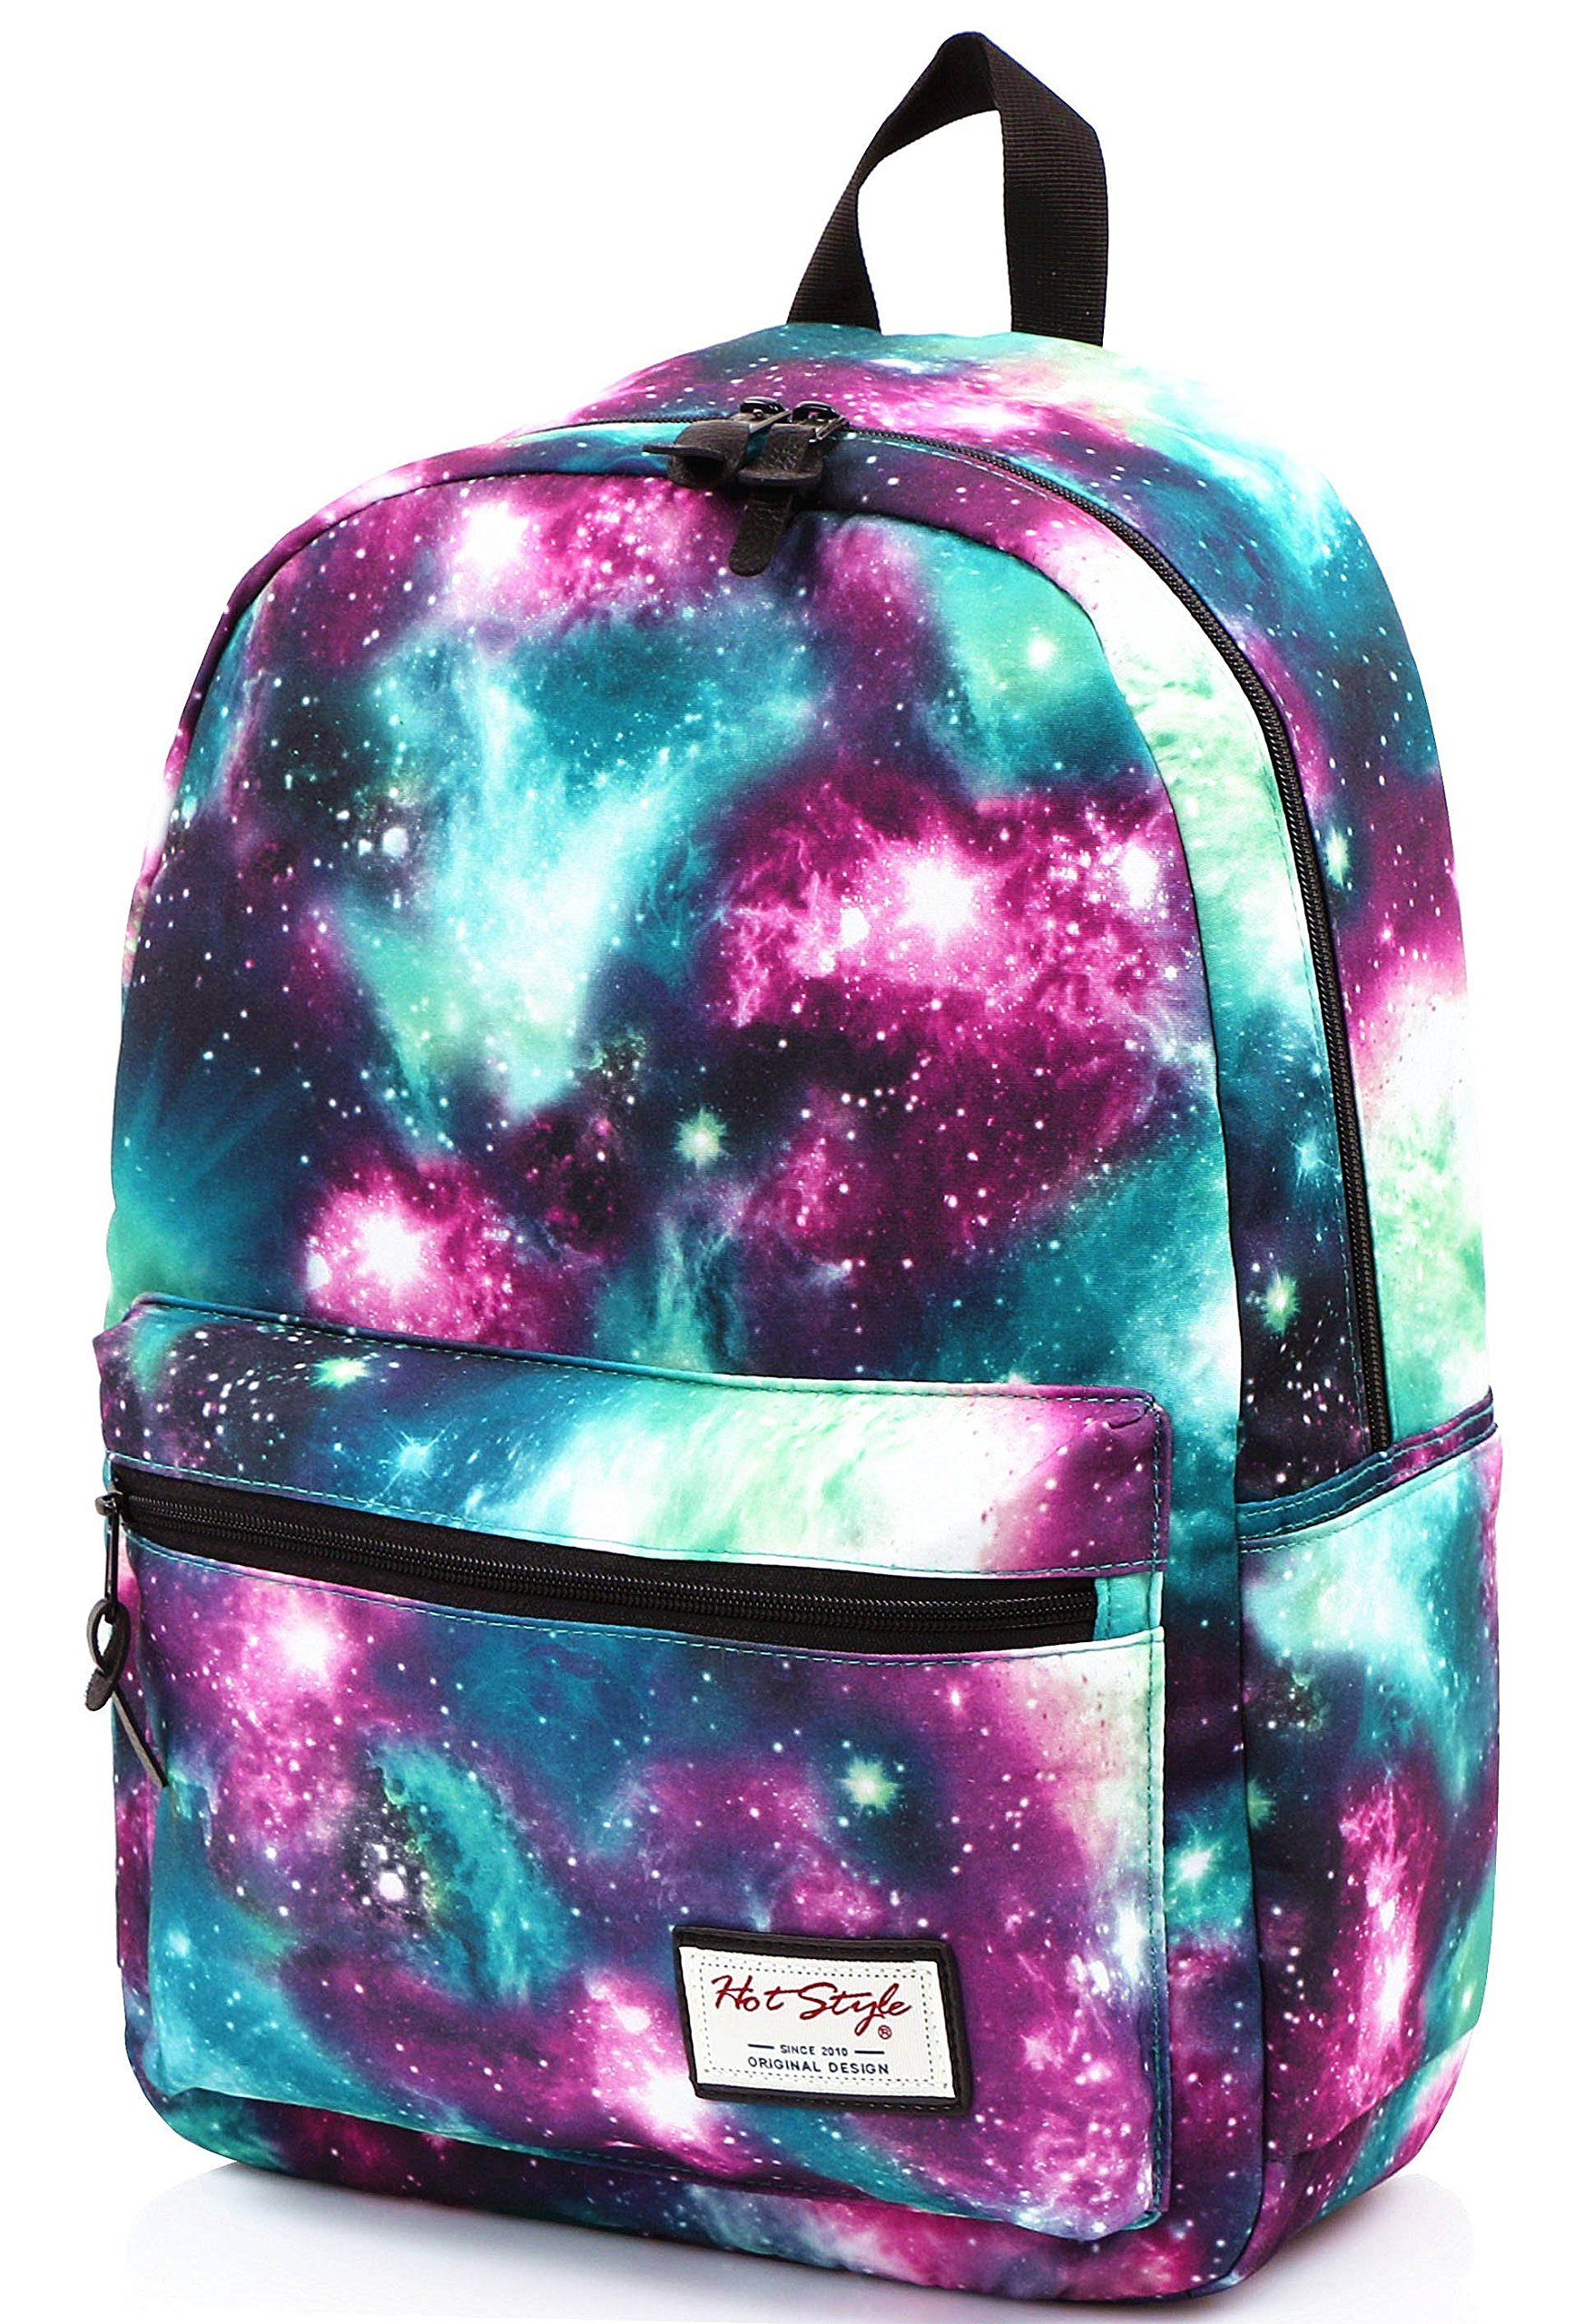 TRENDYMAX Galaxy Backpack Cute for School | 16''x12''x6'' | Holds 15-inch Laptop | Green